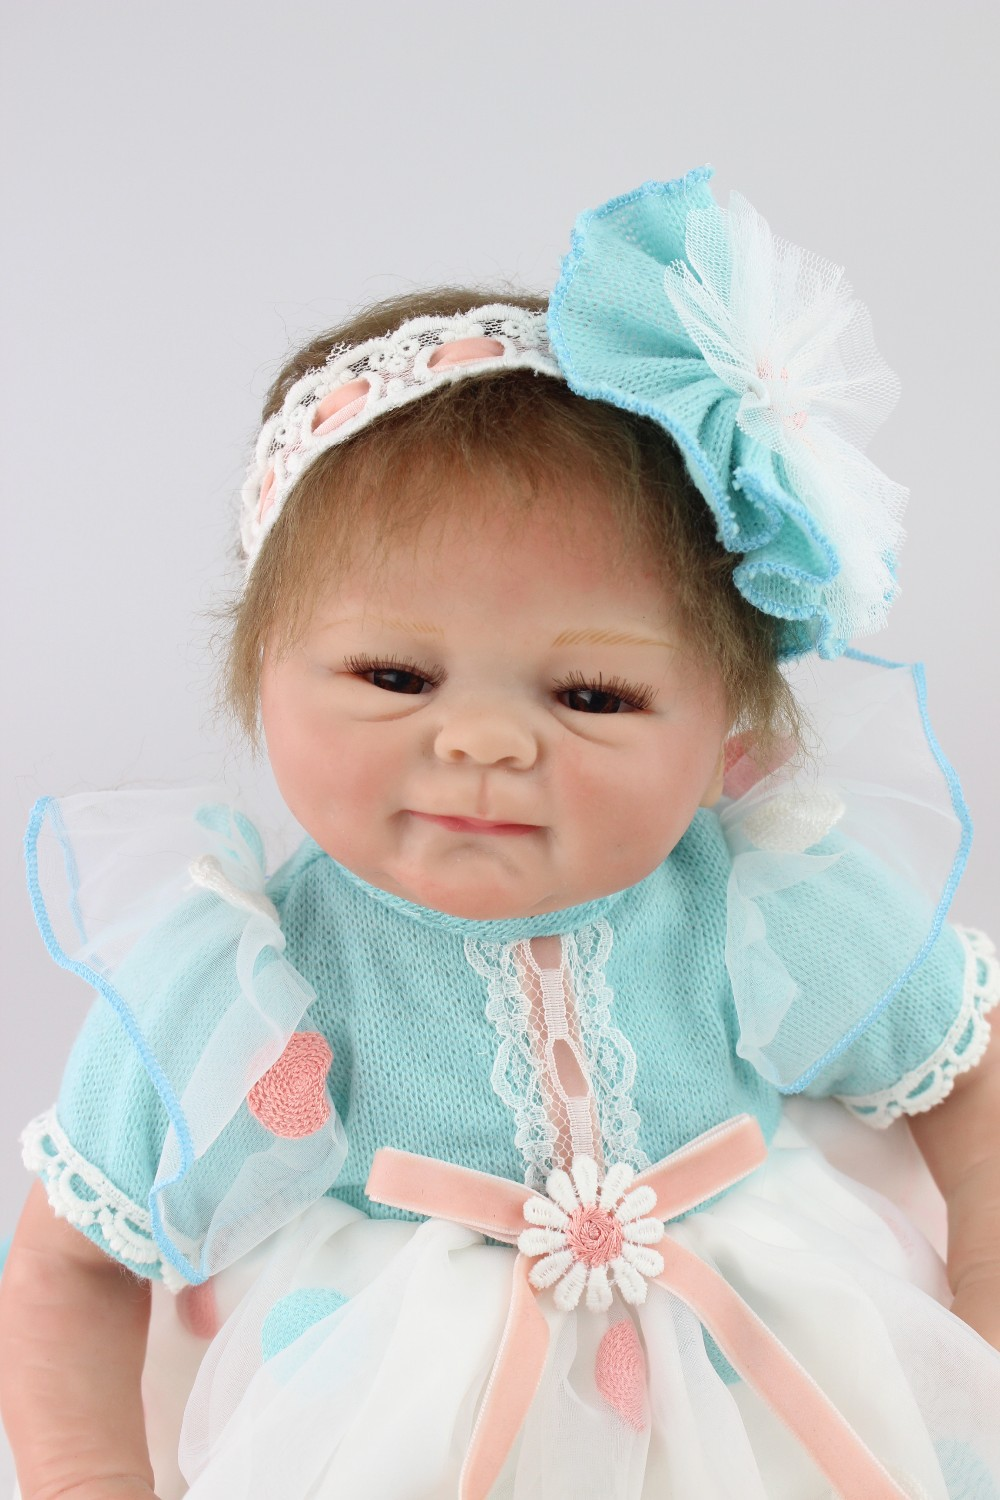 NPKCOLLECTION reborn doll lifelike reborn baby doll wholesale soft real touch baby dolls Christmas gift for children short curl hair lifelike reborn toddler dolls with 20inch baby doll clothes hot welcome lifelike baby dolls for children as gift